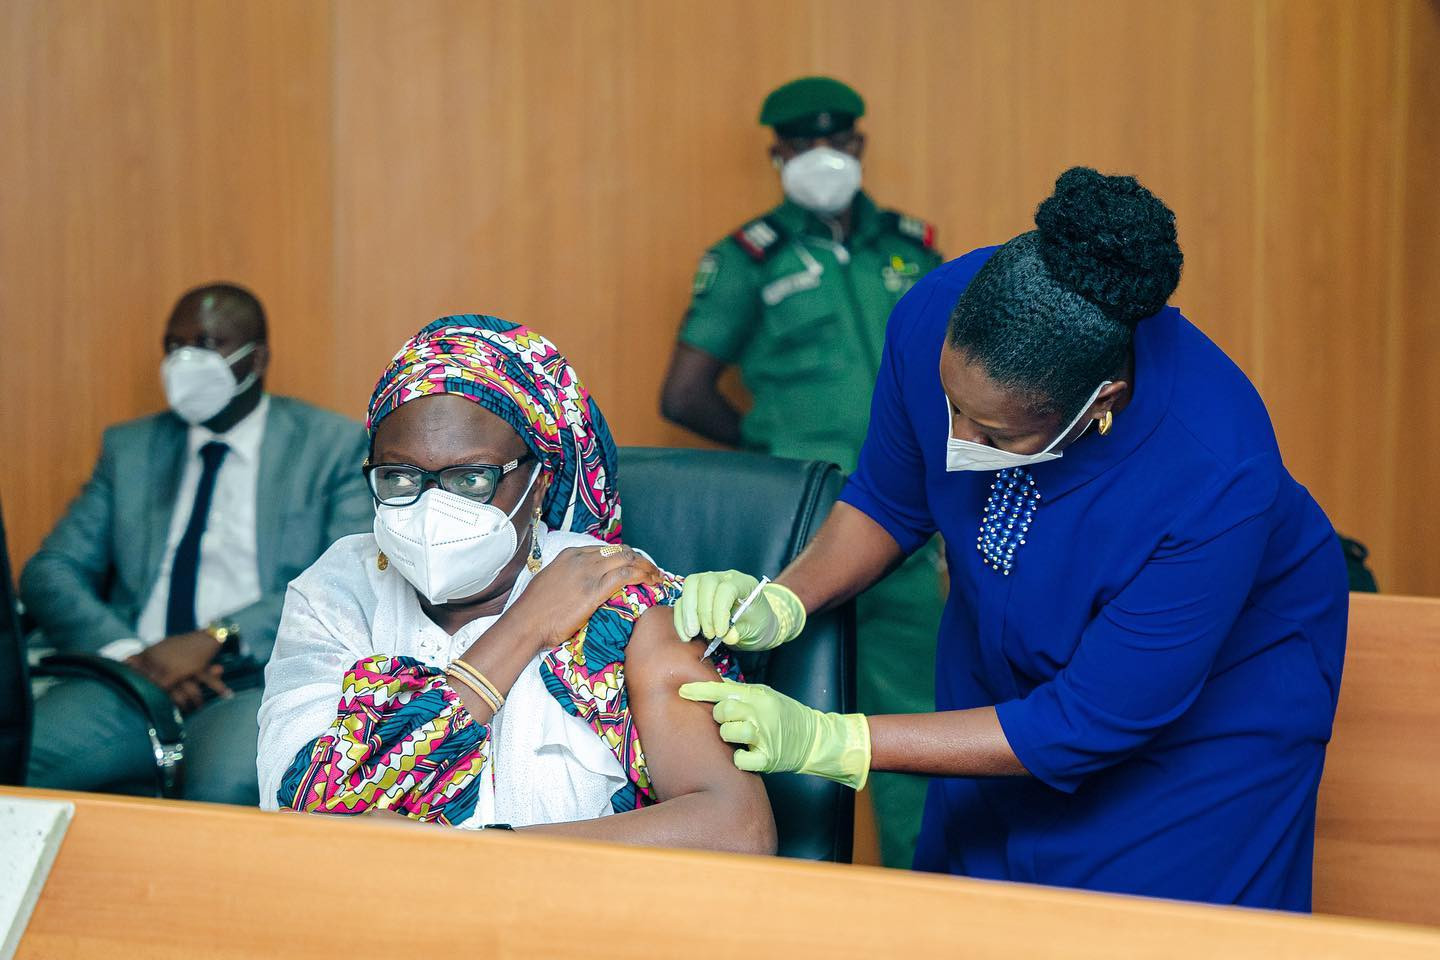 Ogun state governor, Dapo Abiodun, gets vaccinated as the state takes delivery of 50, 000 doses of COVID19 vaccine (photos)